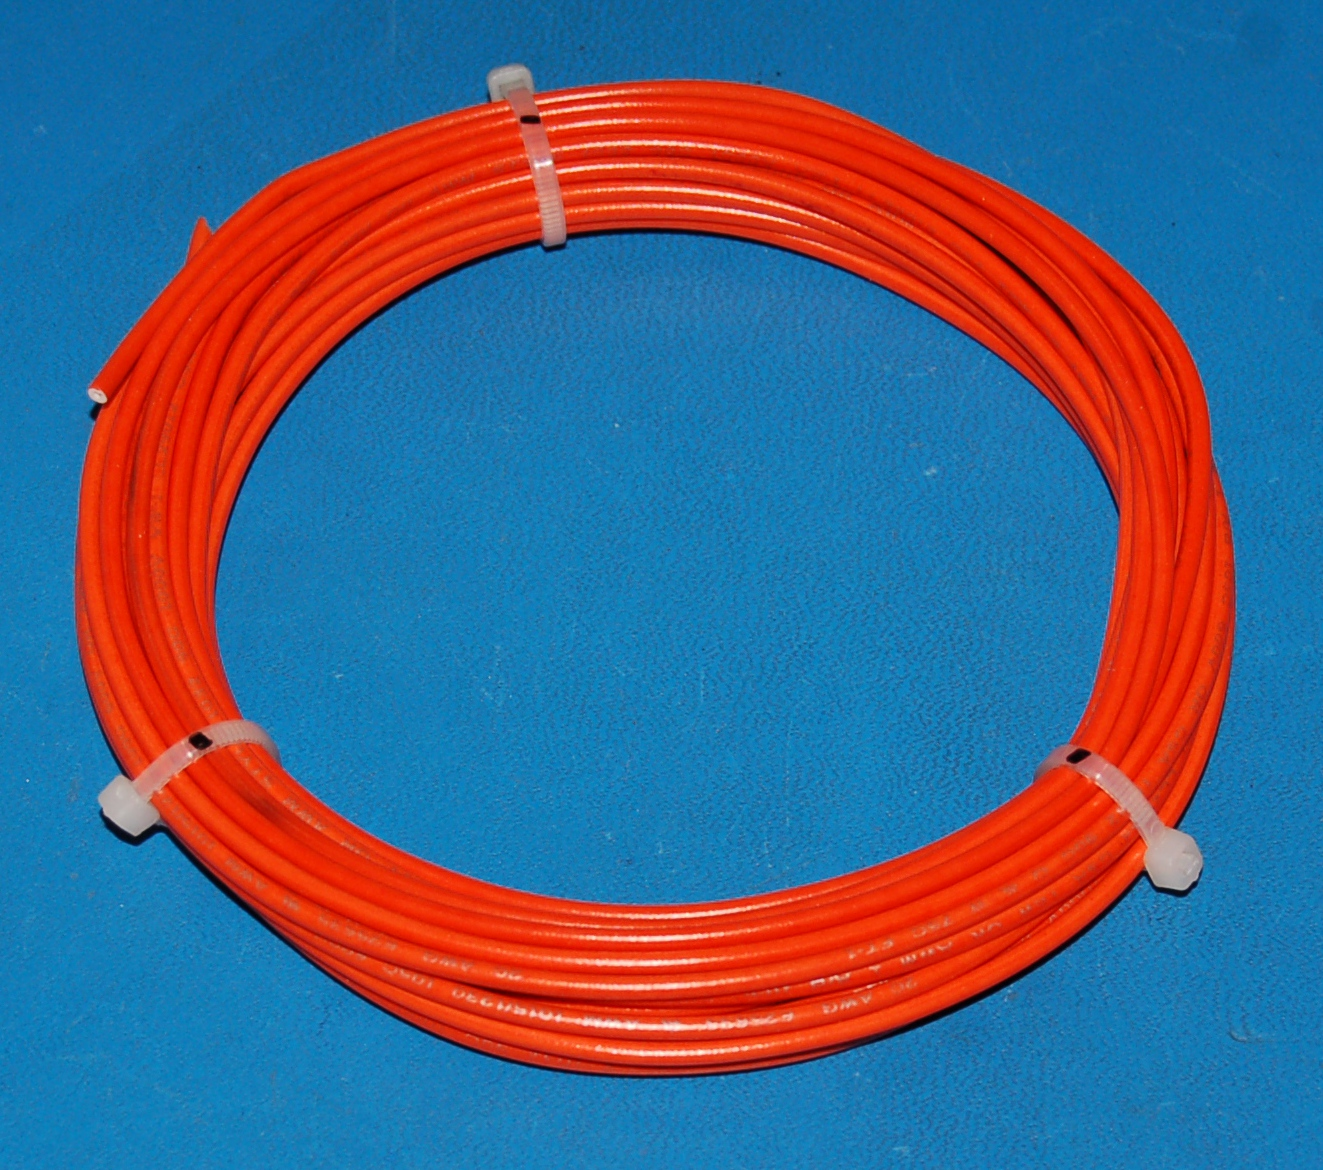 Solid Tinned Copper Wire, 600V, #20 AWG x 25' (Orange)